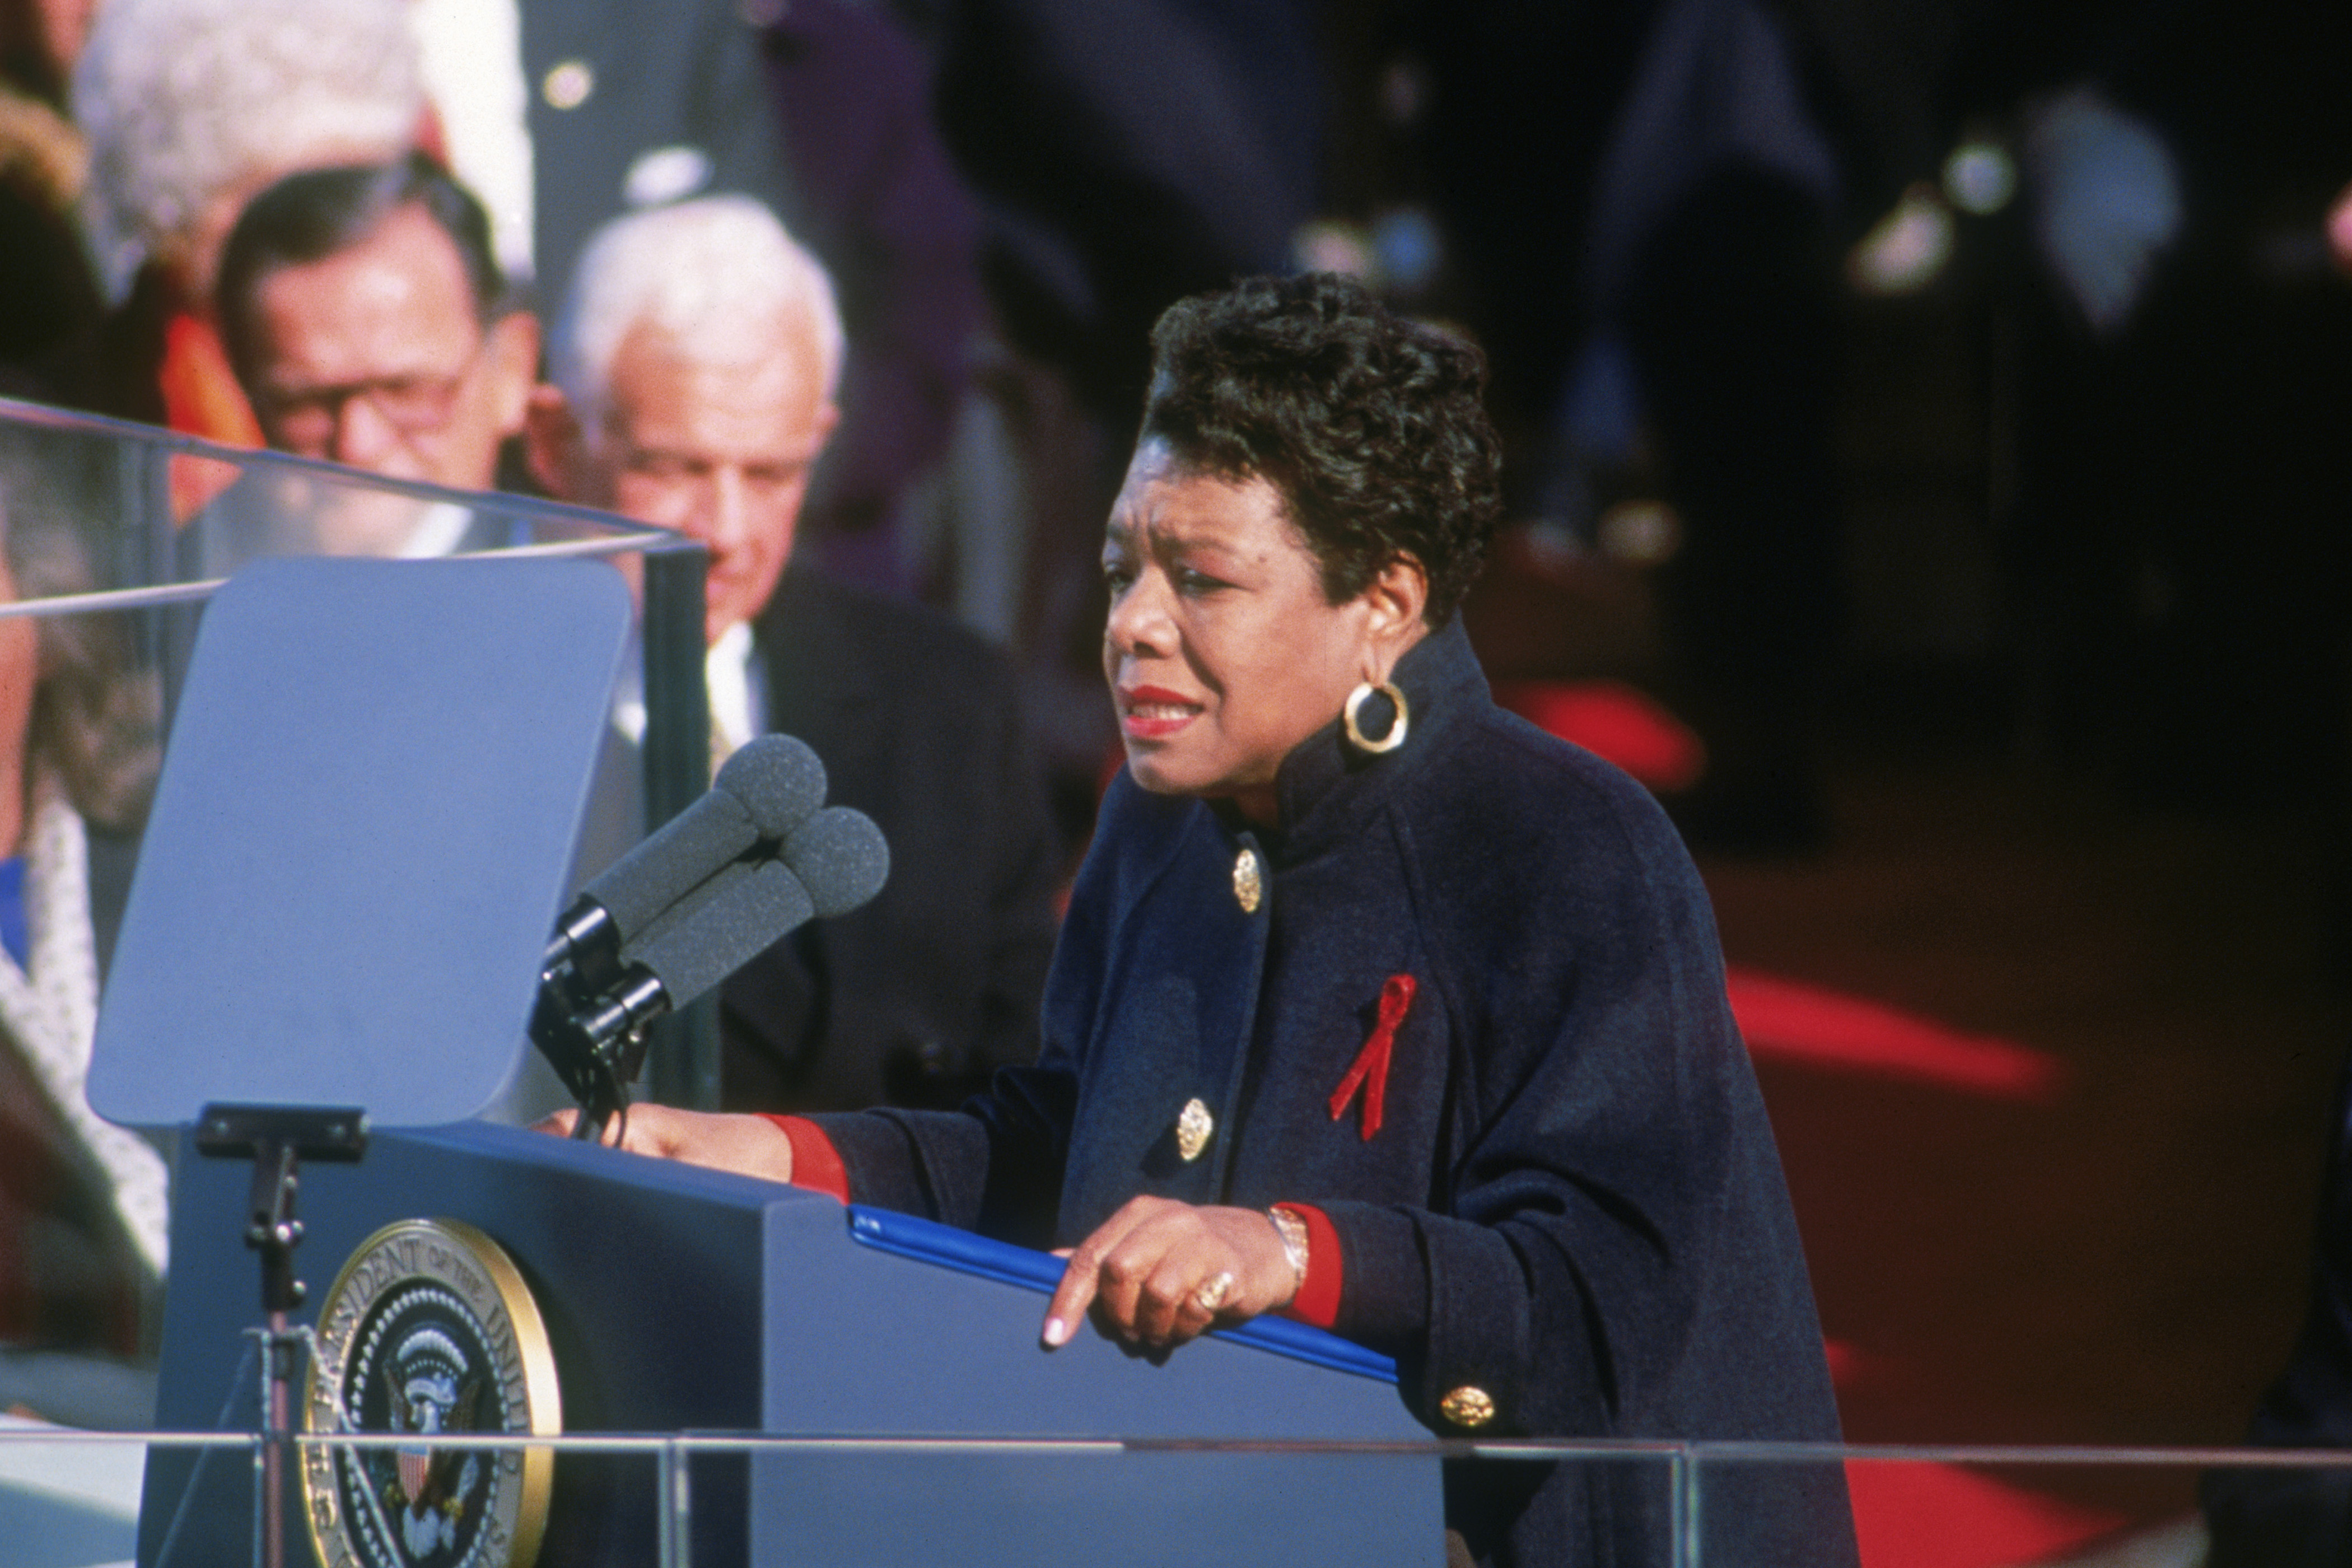 Poet Maya Angelou recites her poem 'On the Pulse of Morning' at the inauguration of President Bill Clinton in Washington D.C., Jan. 20, 1993. (Consolidated News Pictures/Getty Images)